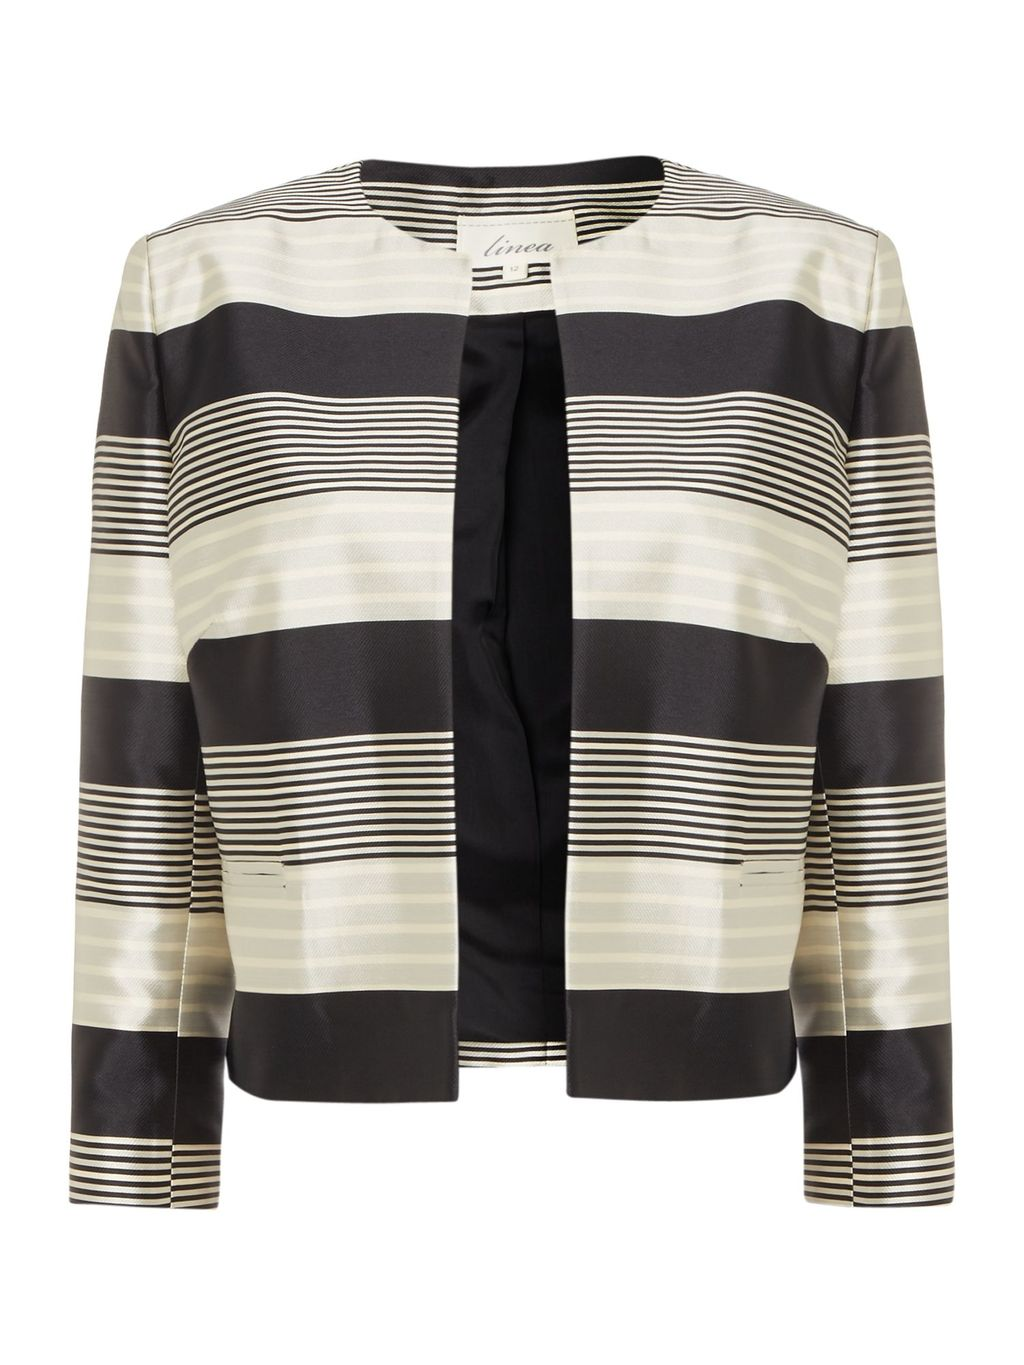 Monochrome Stripe Jacket, Multi Coloured - pattern: horizontal stripes; style: single breasted blazer; collar: round collar/collarless; predominant colour: ivory/cream; secondary colour: charcoal; length: standard; fit: straight cut (boxy); fibres: polyester/polyamide - mix; occasions: occasion; sleeve length: 3/4 length; sleeve style: standard; collar break: high; pattern type: fabric; pattern size: standard; texture group: woven light midweight; season: s/s 2016; wardrobe: event